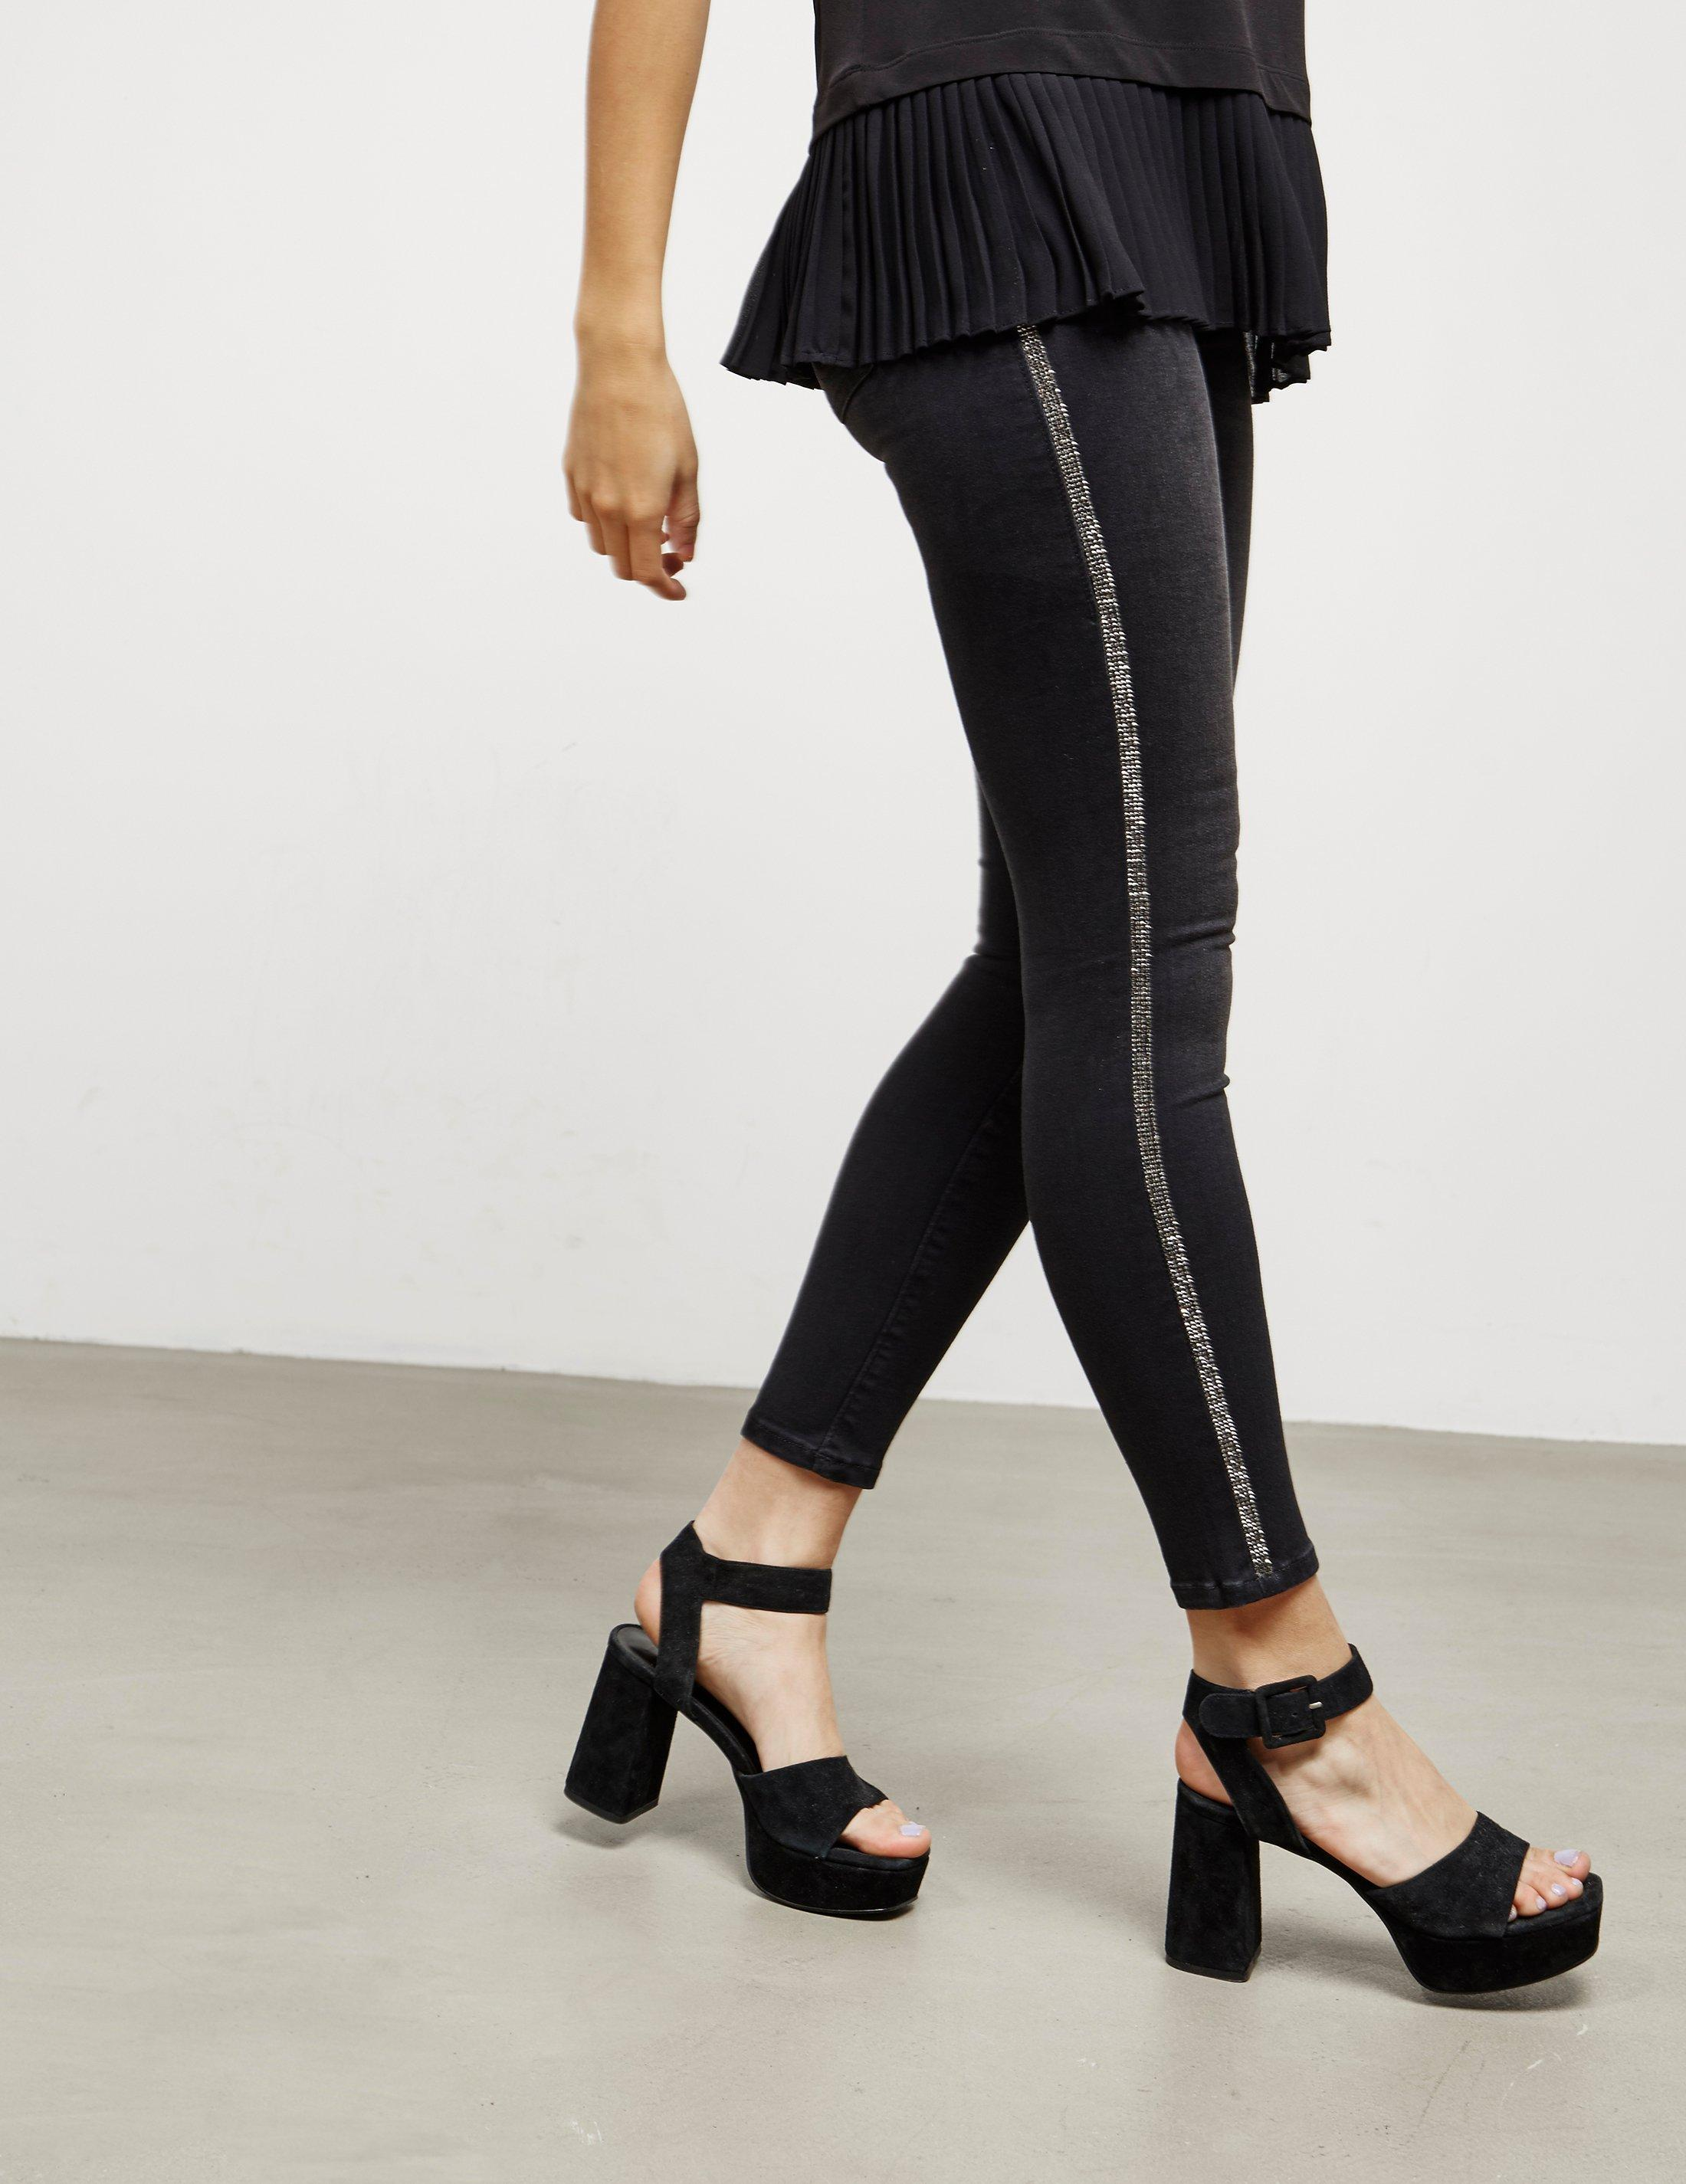 ... Gym Stretch Sports Pants Trousers  outlet store sale 2adf3 ce3e3 True  Religion Womens Glitter Jeggings Black in Black - Lyst ... 2291d56be1c9